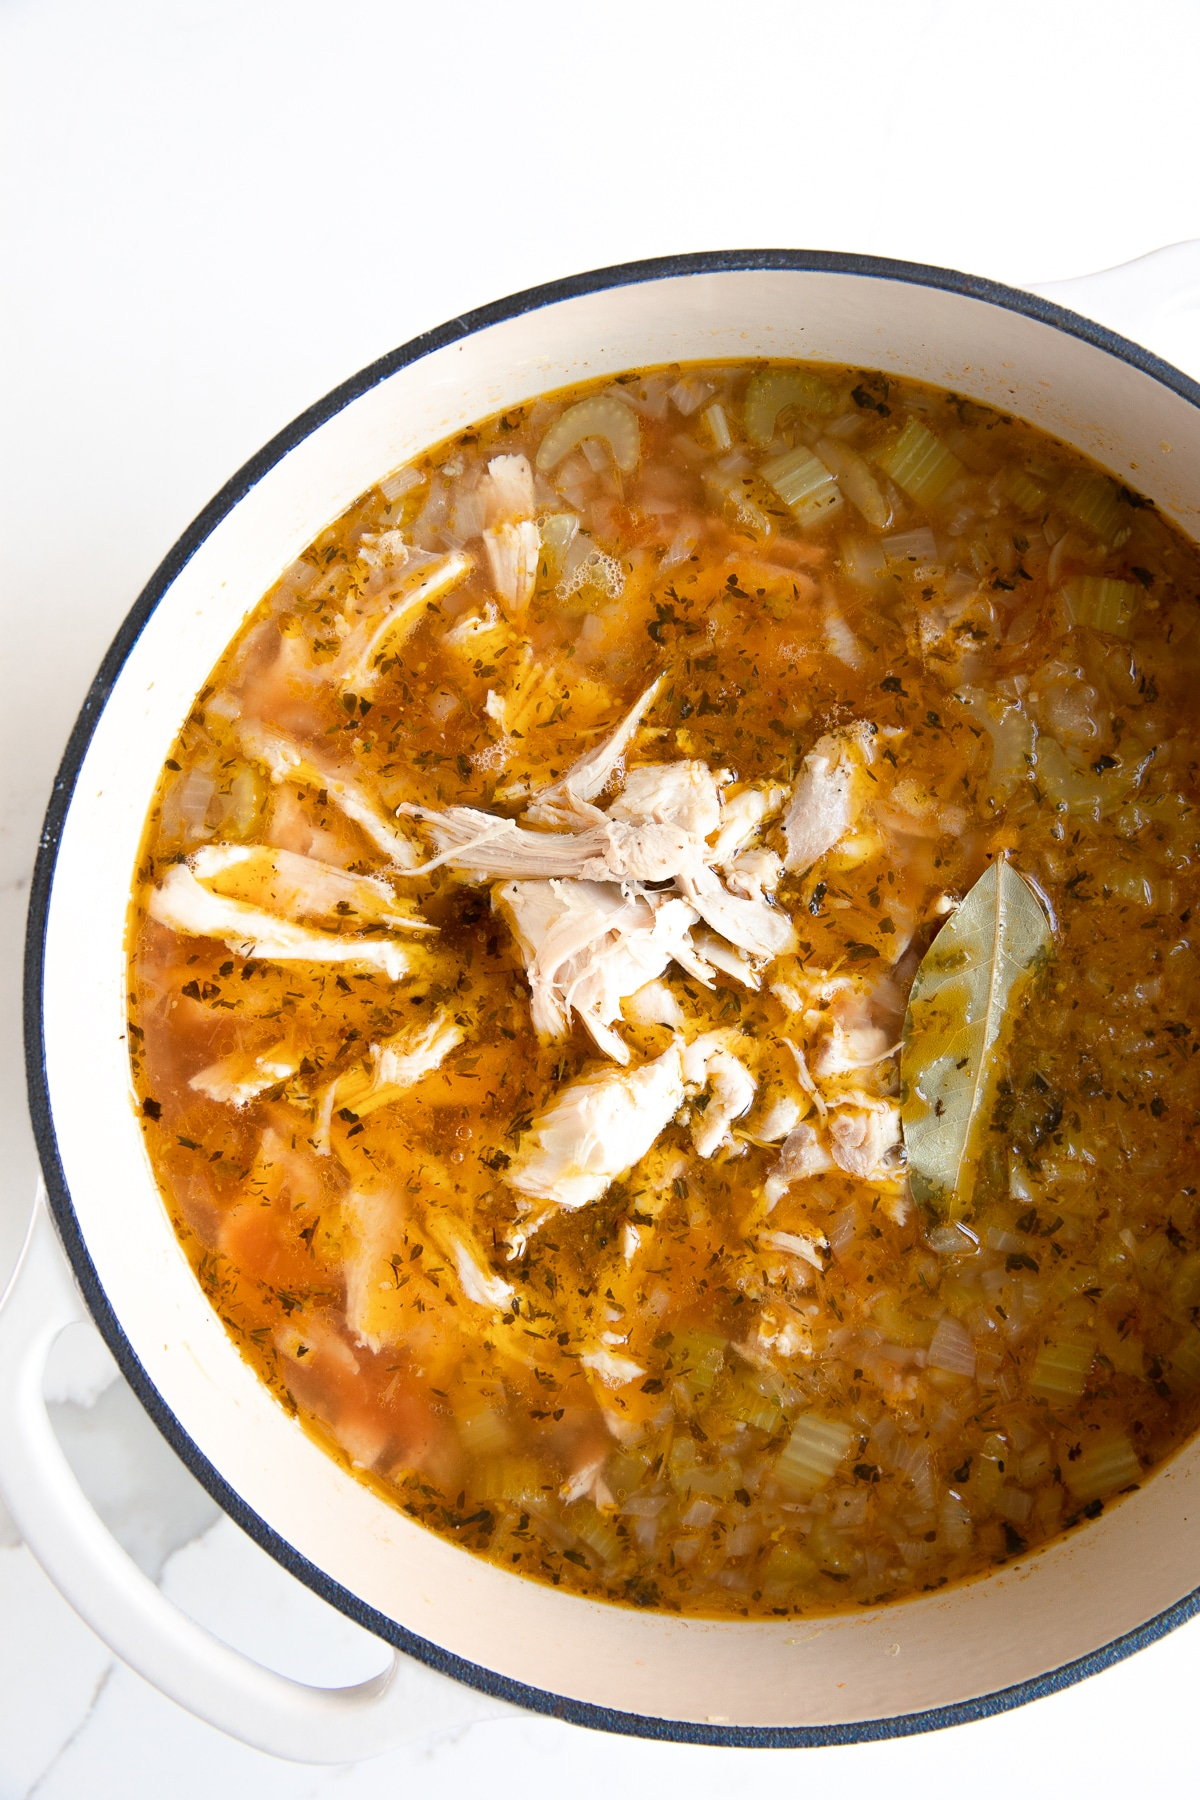 Large Dutch oven filled with simmering hot turkey soup with veggies and barley.